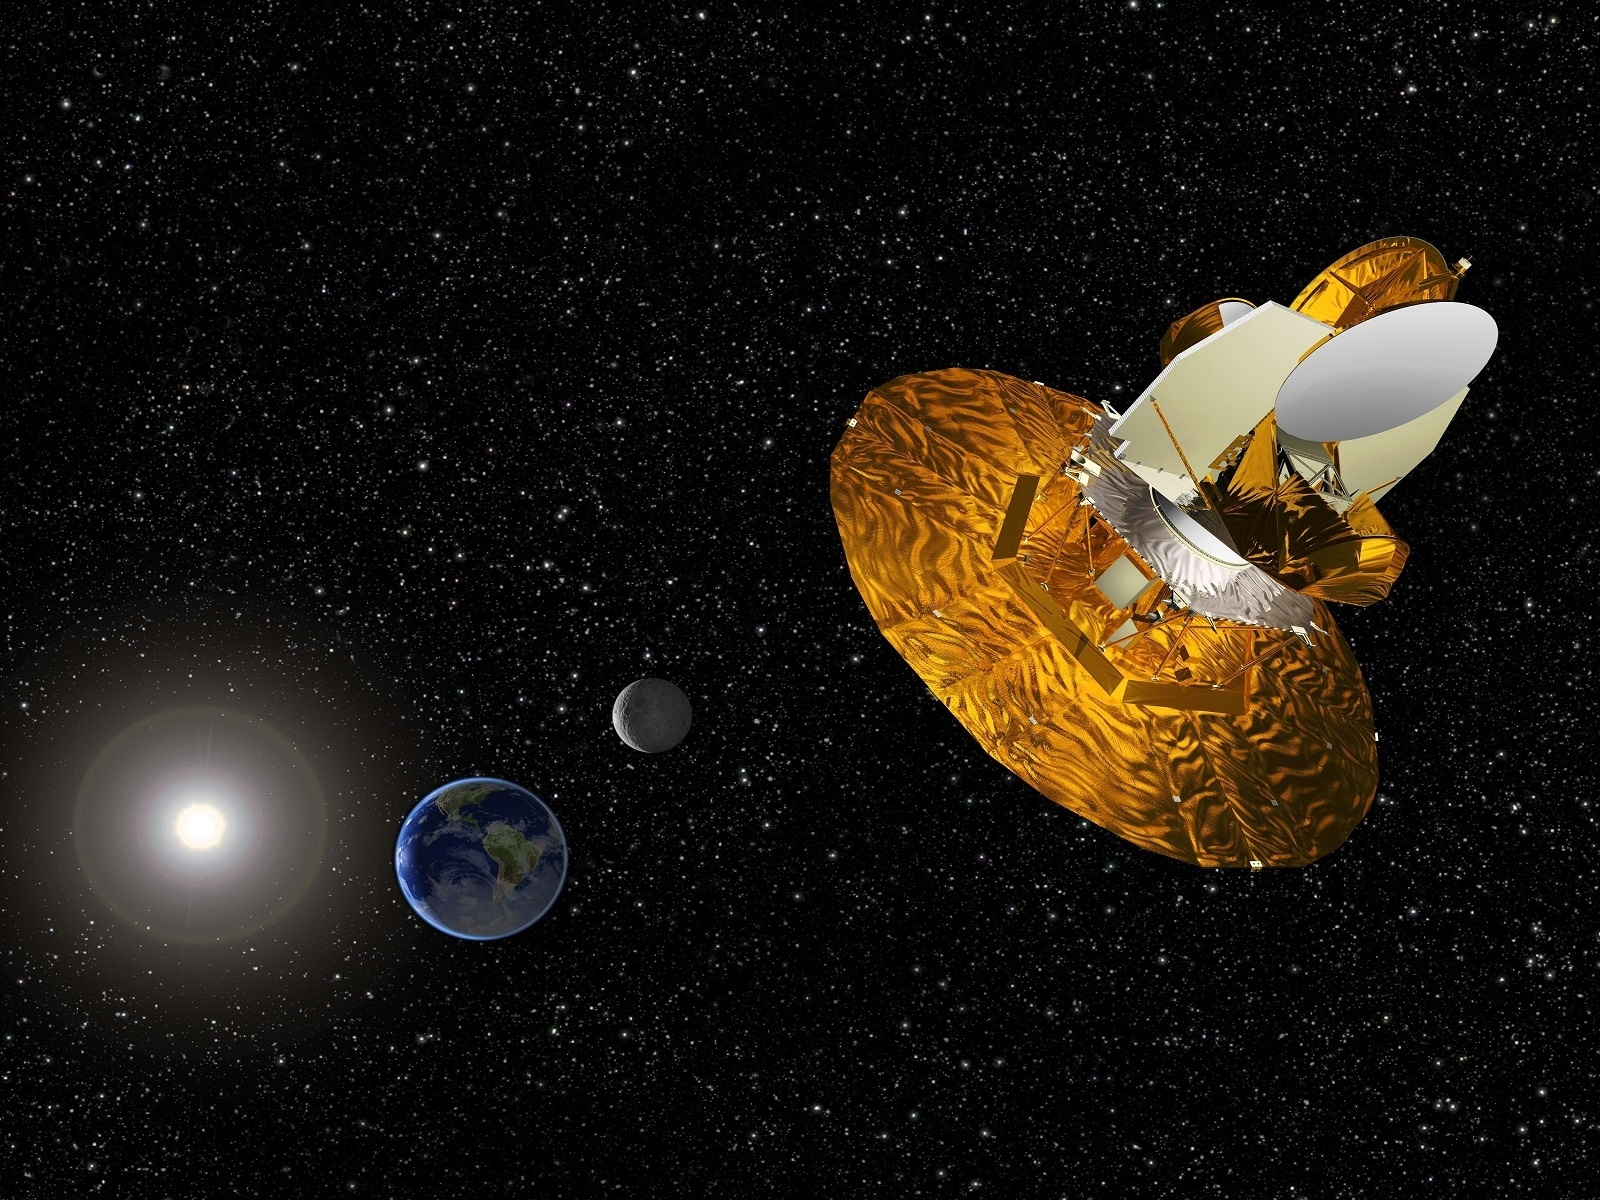 spaceprobe, universeall